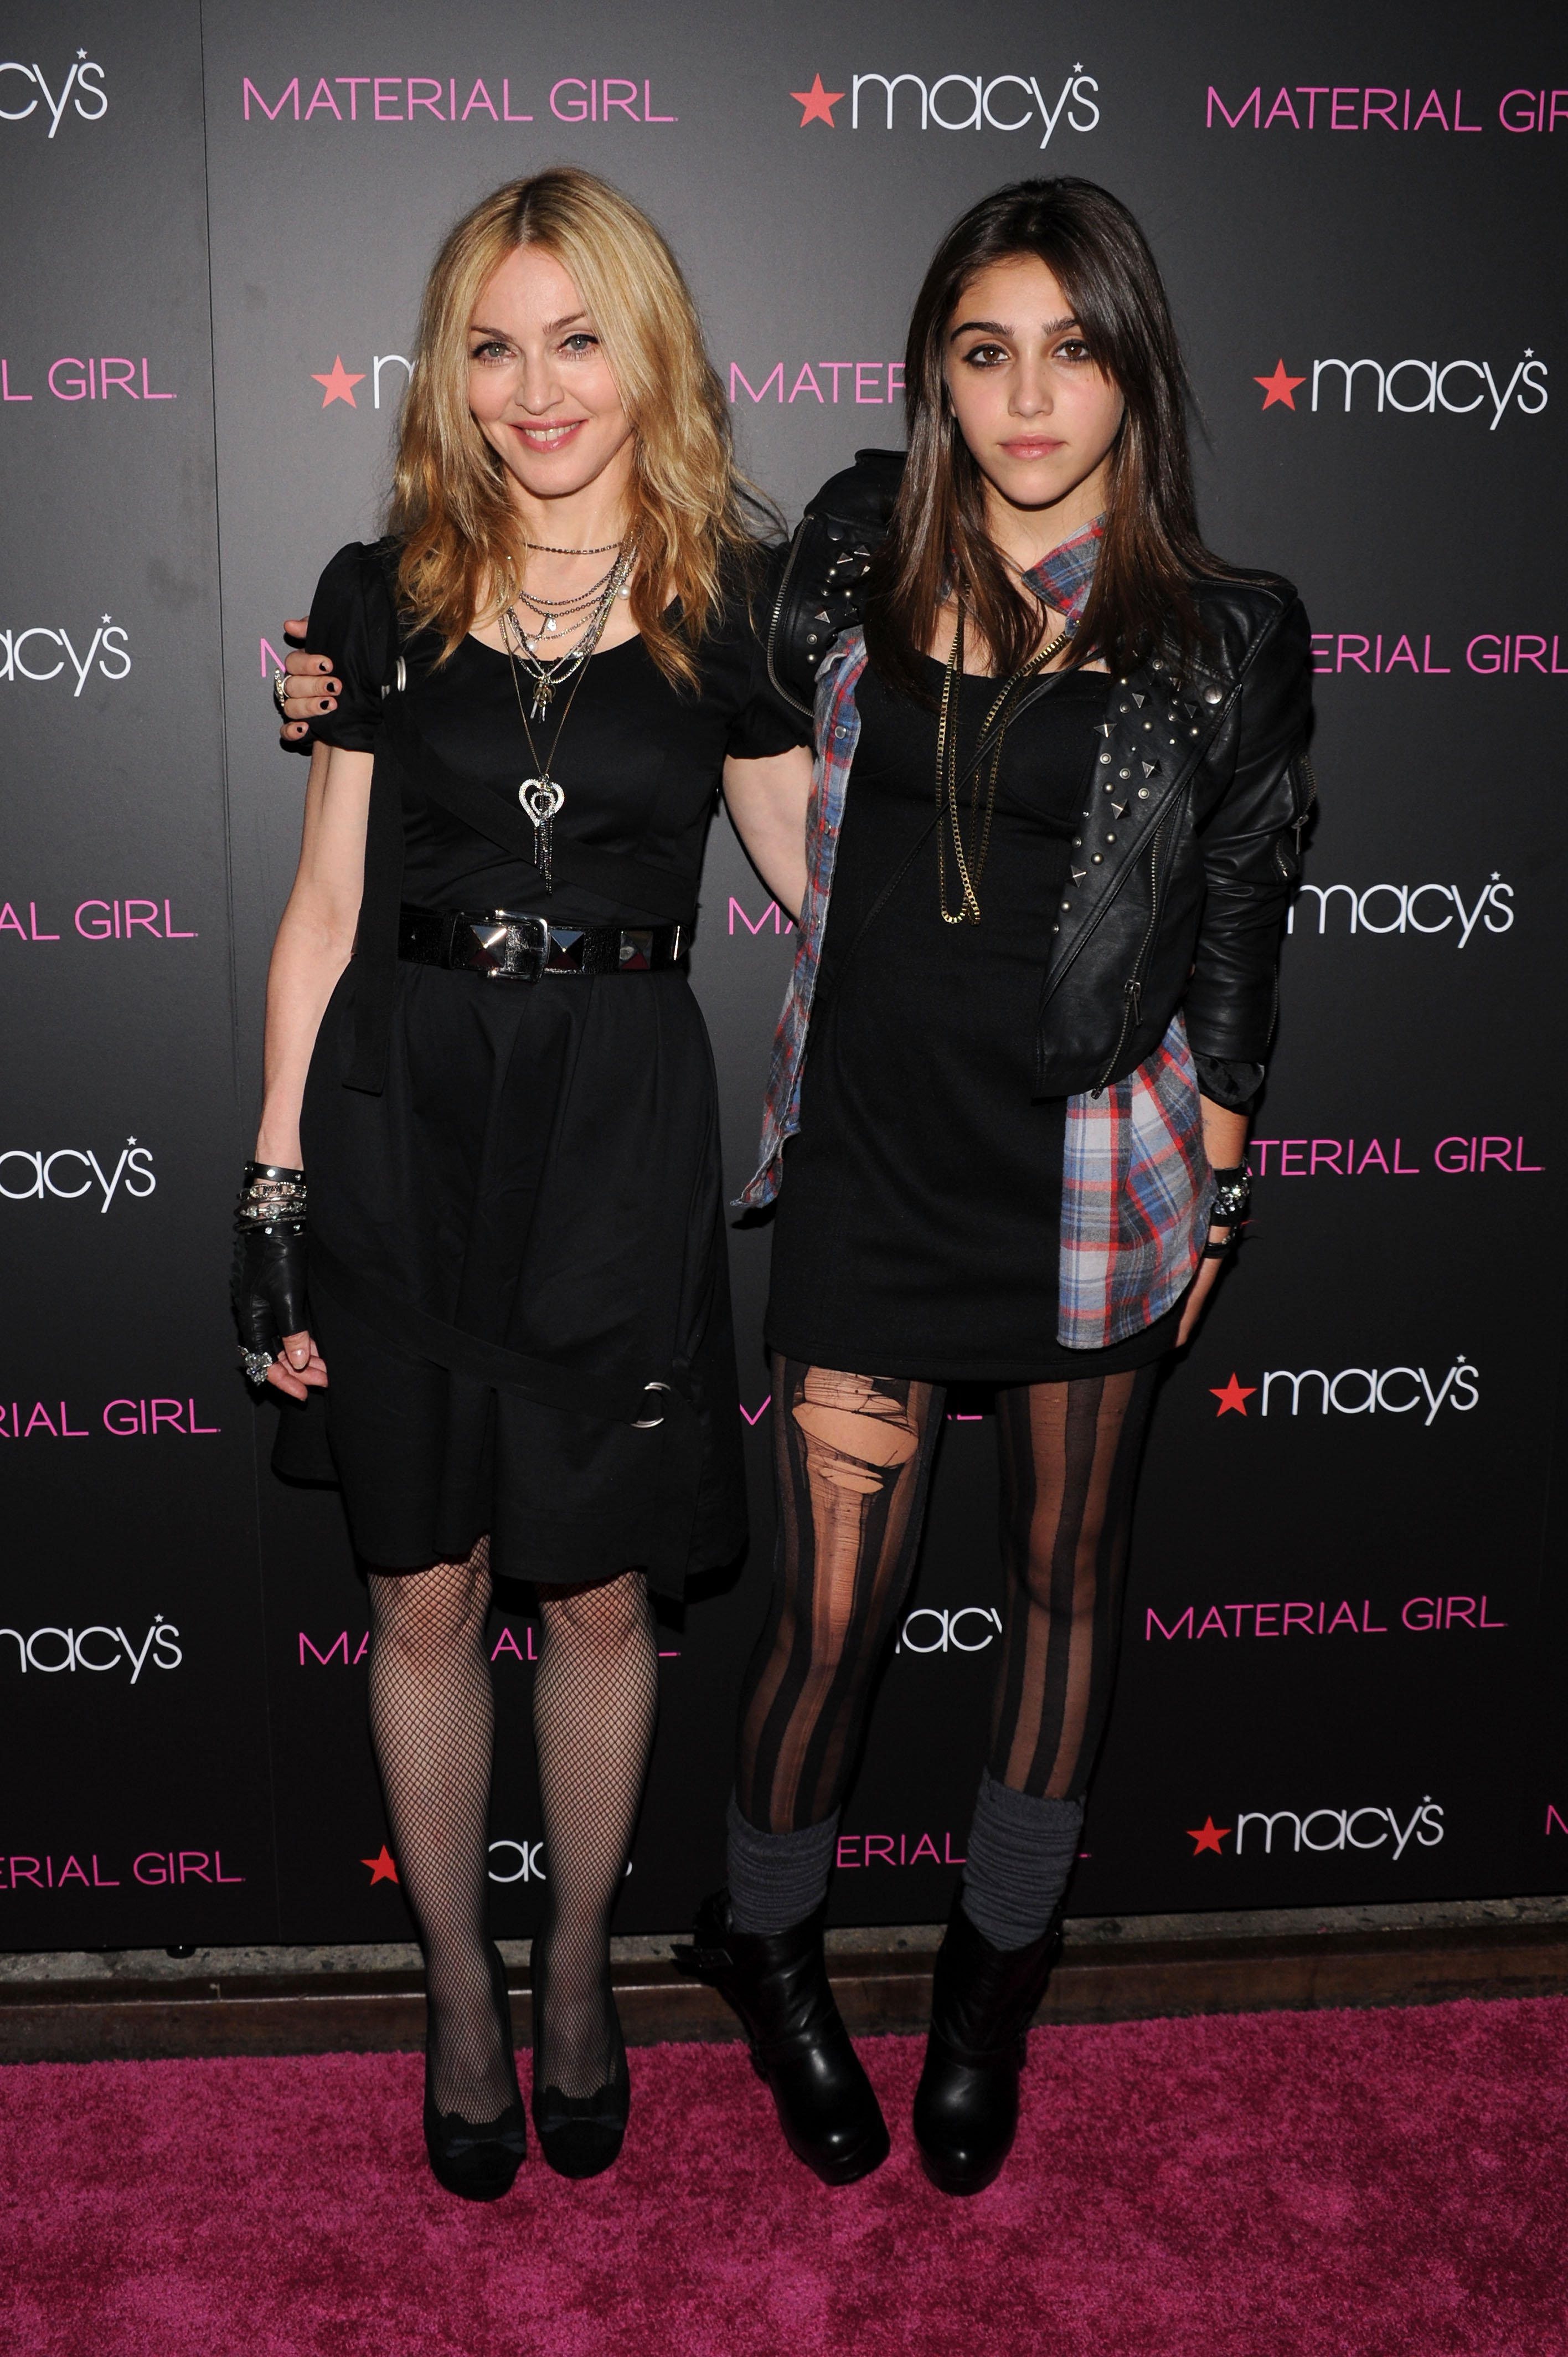 """Image Credits: Getty Images / Bryan Bedder 